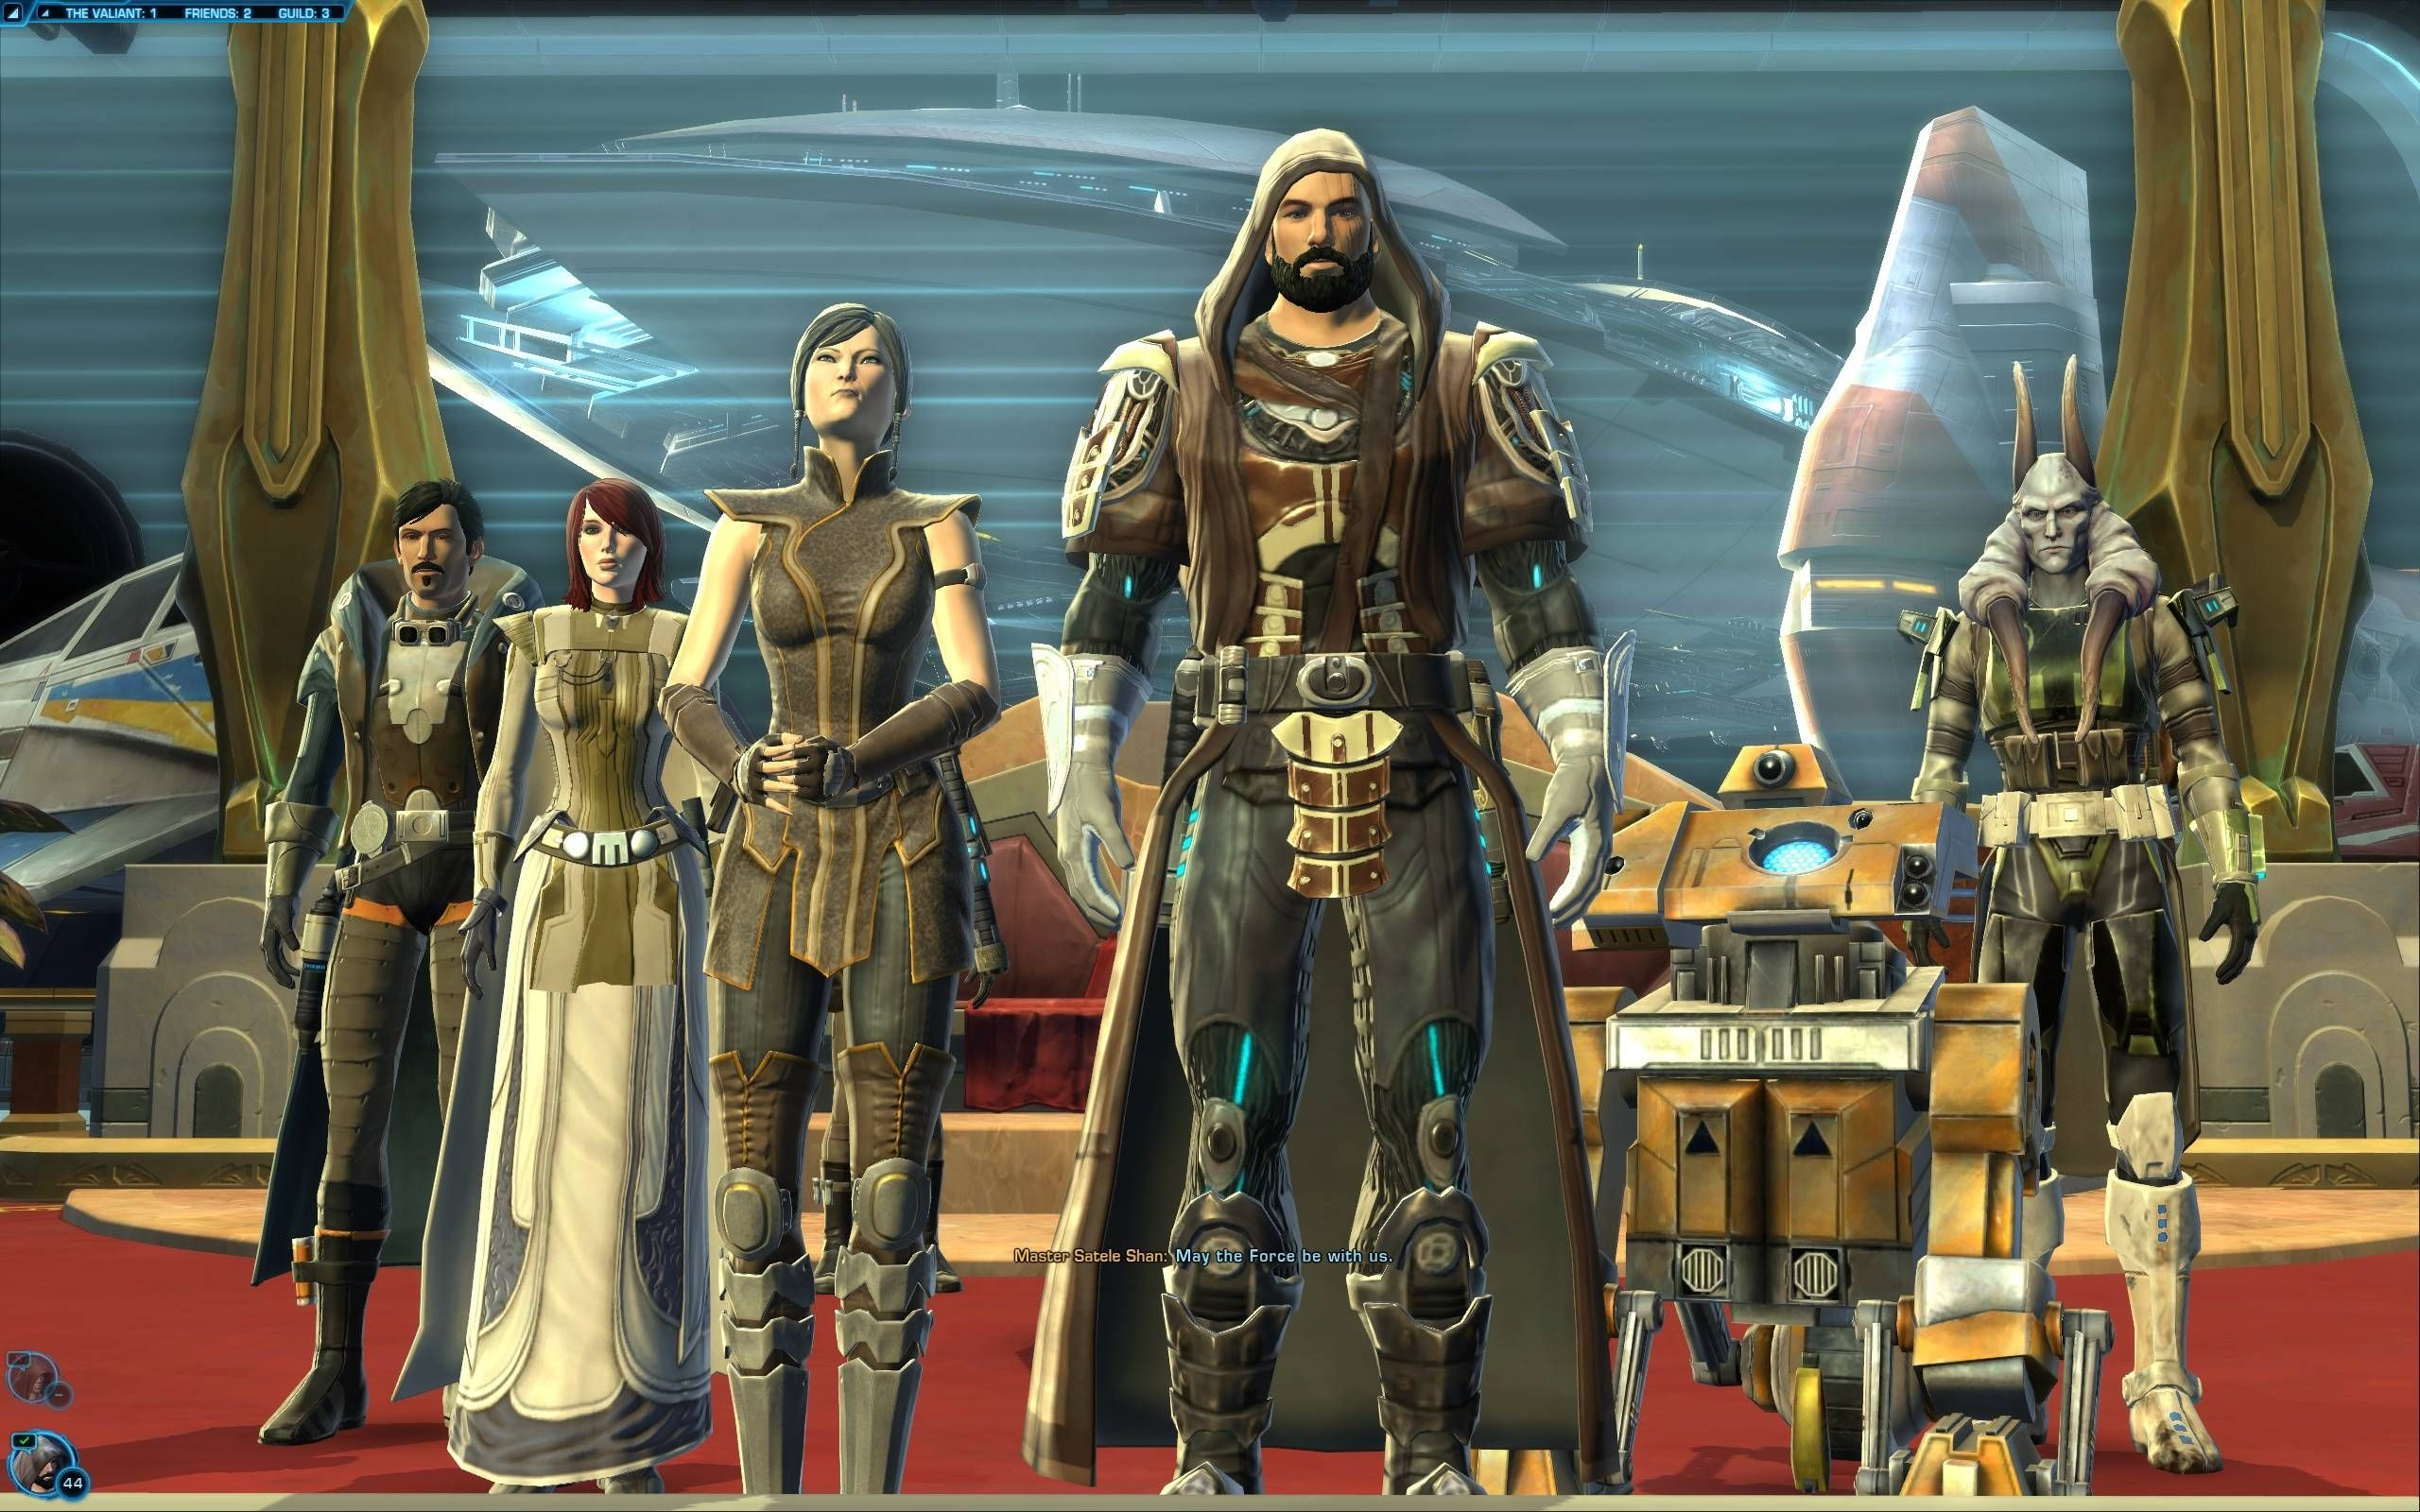 SWTOR Jedi Knight Guardian Leveling Build 2 0 | SWTOR Guides